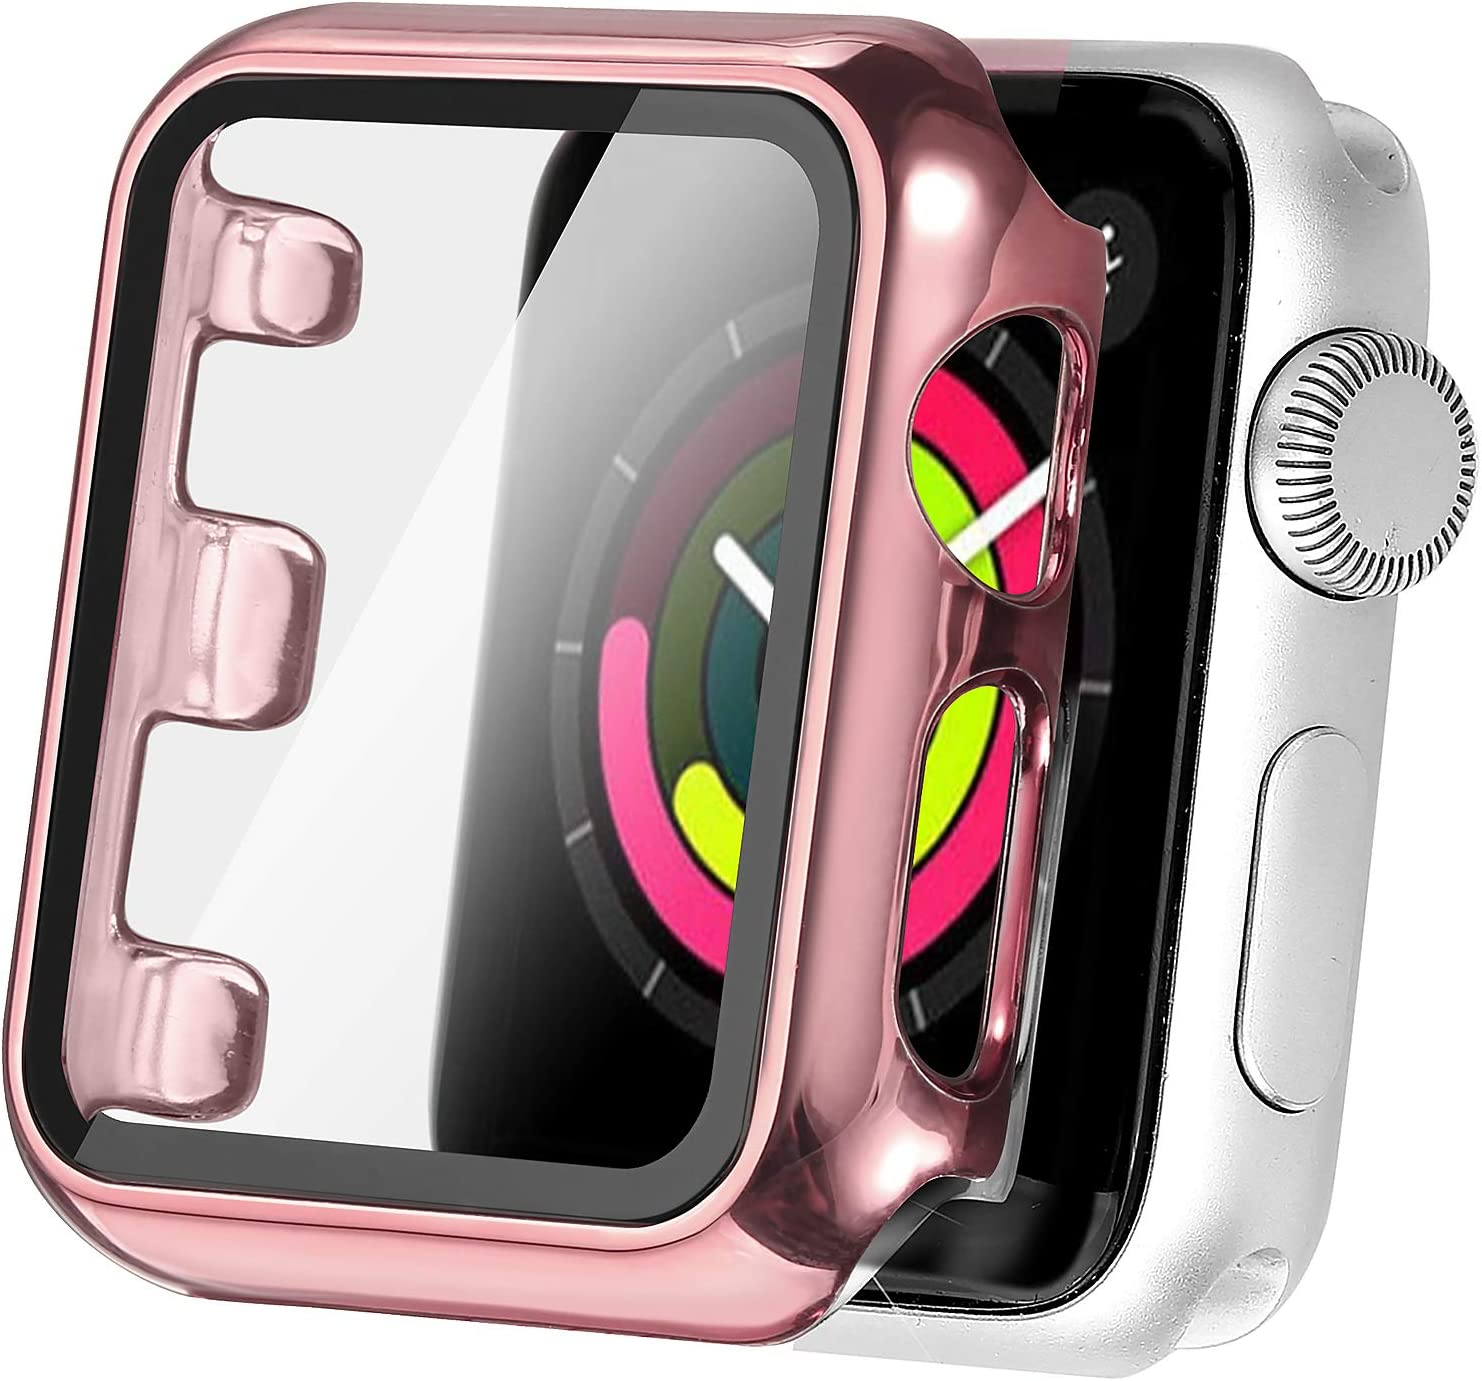 Secbolt 38mm Case Compatible Apple Watch Series 1 Series 2 Series 3 with Built in Tempered Glass Screen Protector- All Around Protective Case for Apple Watch Series 3/2/1 38mm (Rose Pink)